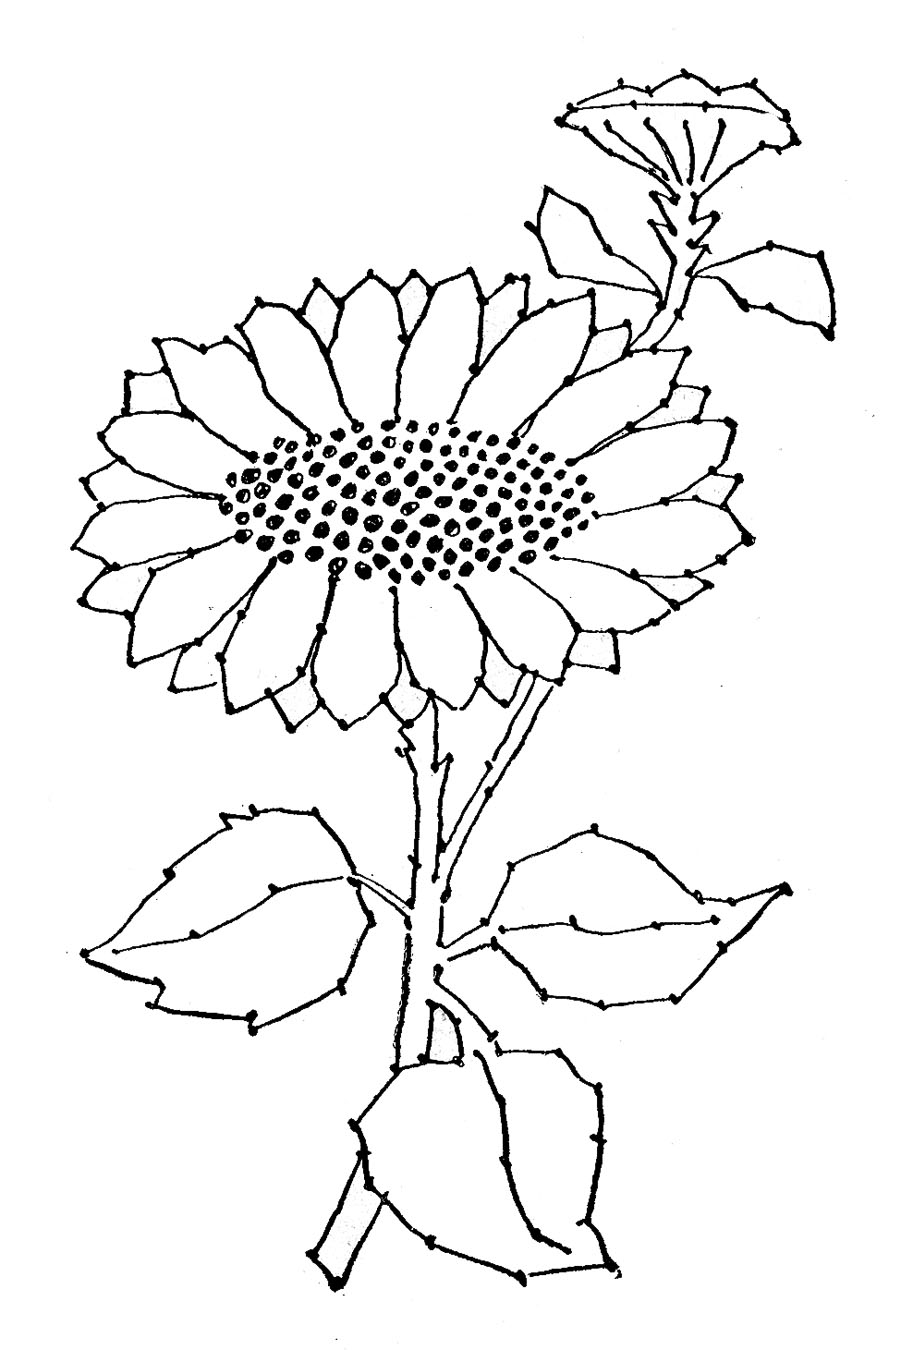 hight resolution of black and white sun flower clip art embroidery pattern sunflower